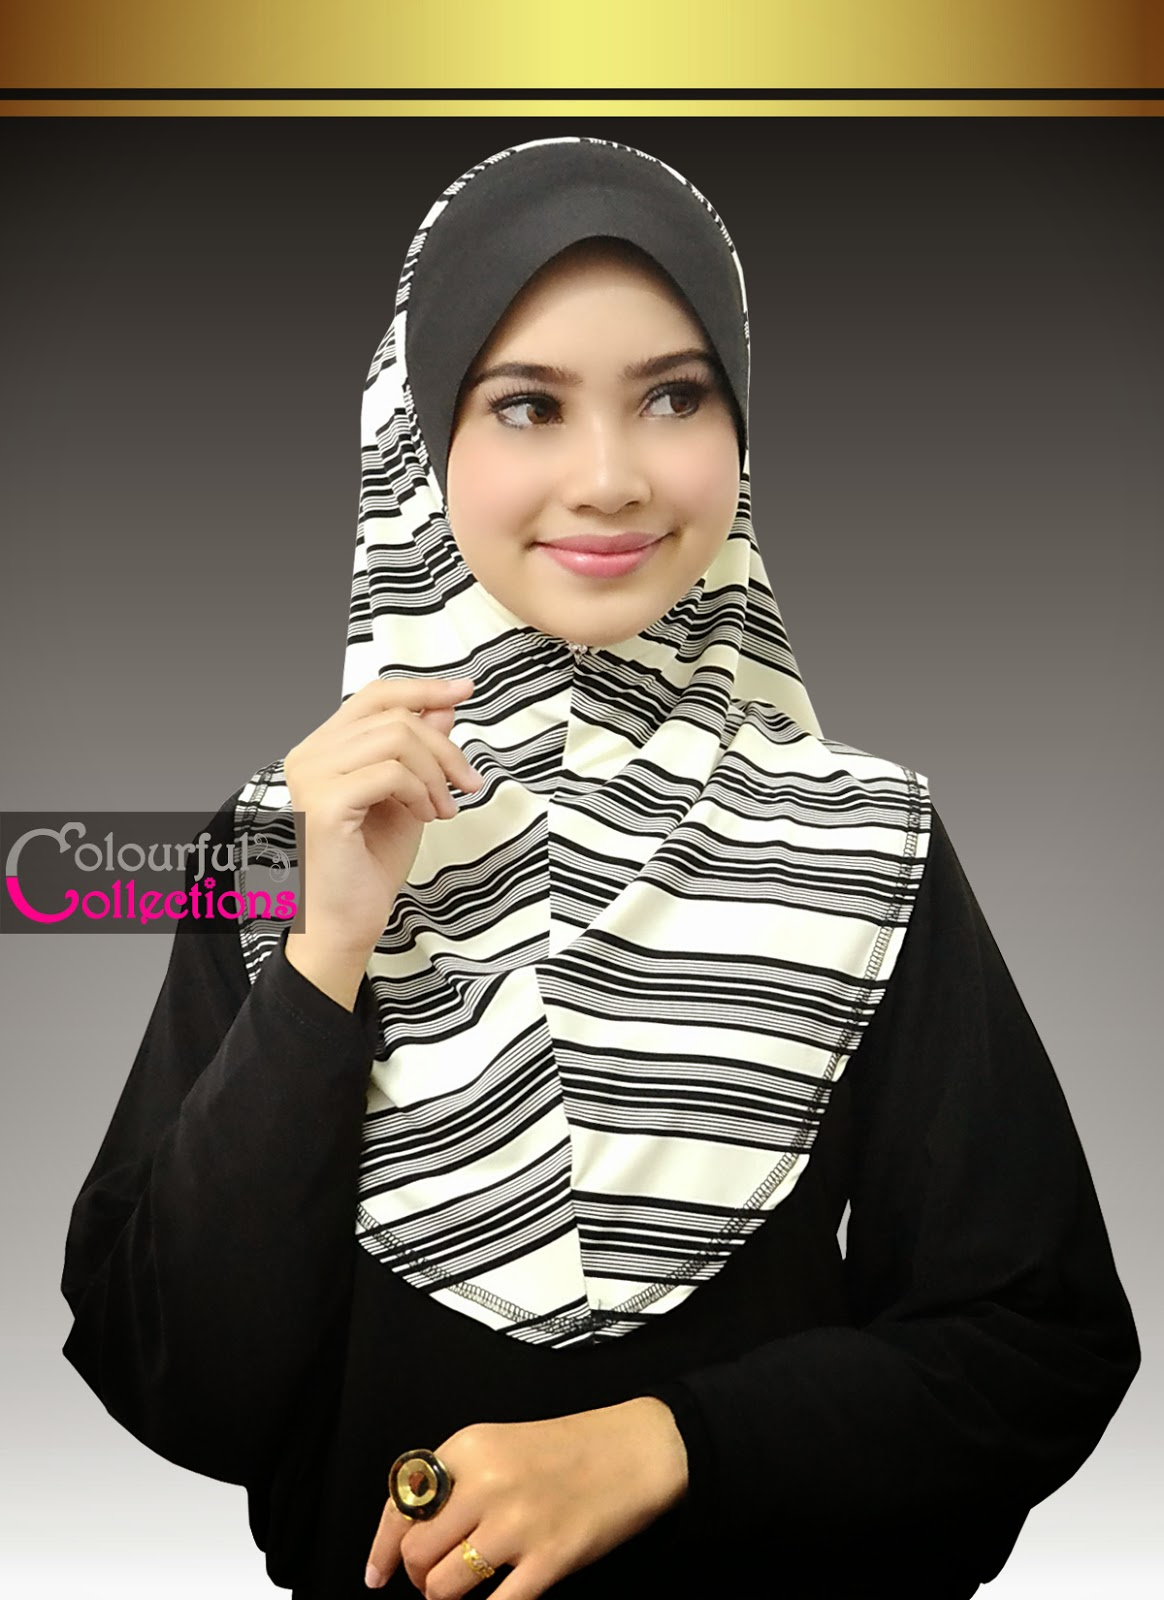 http://www.colourfulcollections.com/search/label/TUDUNG%20LUTFIA